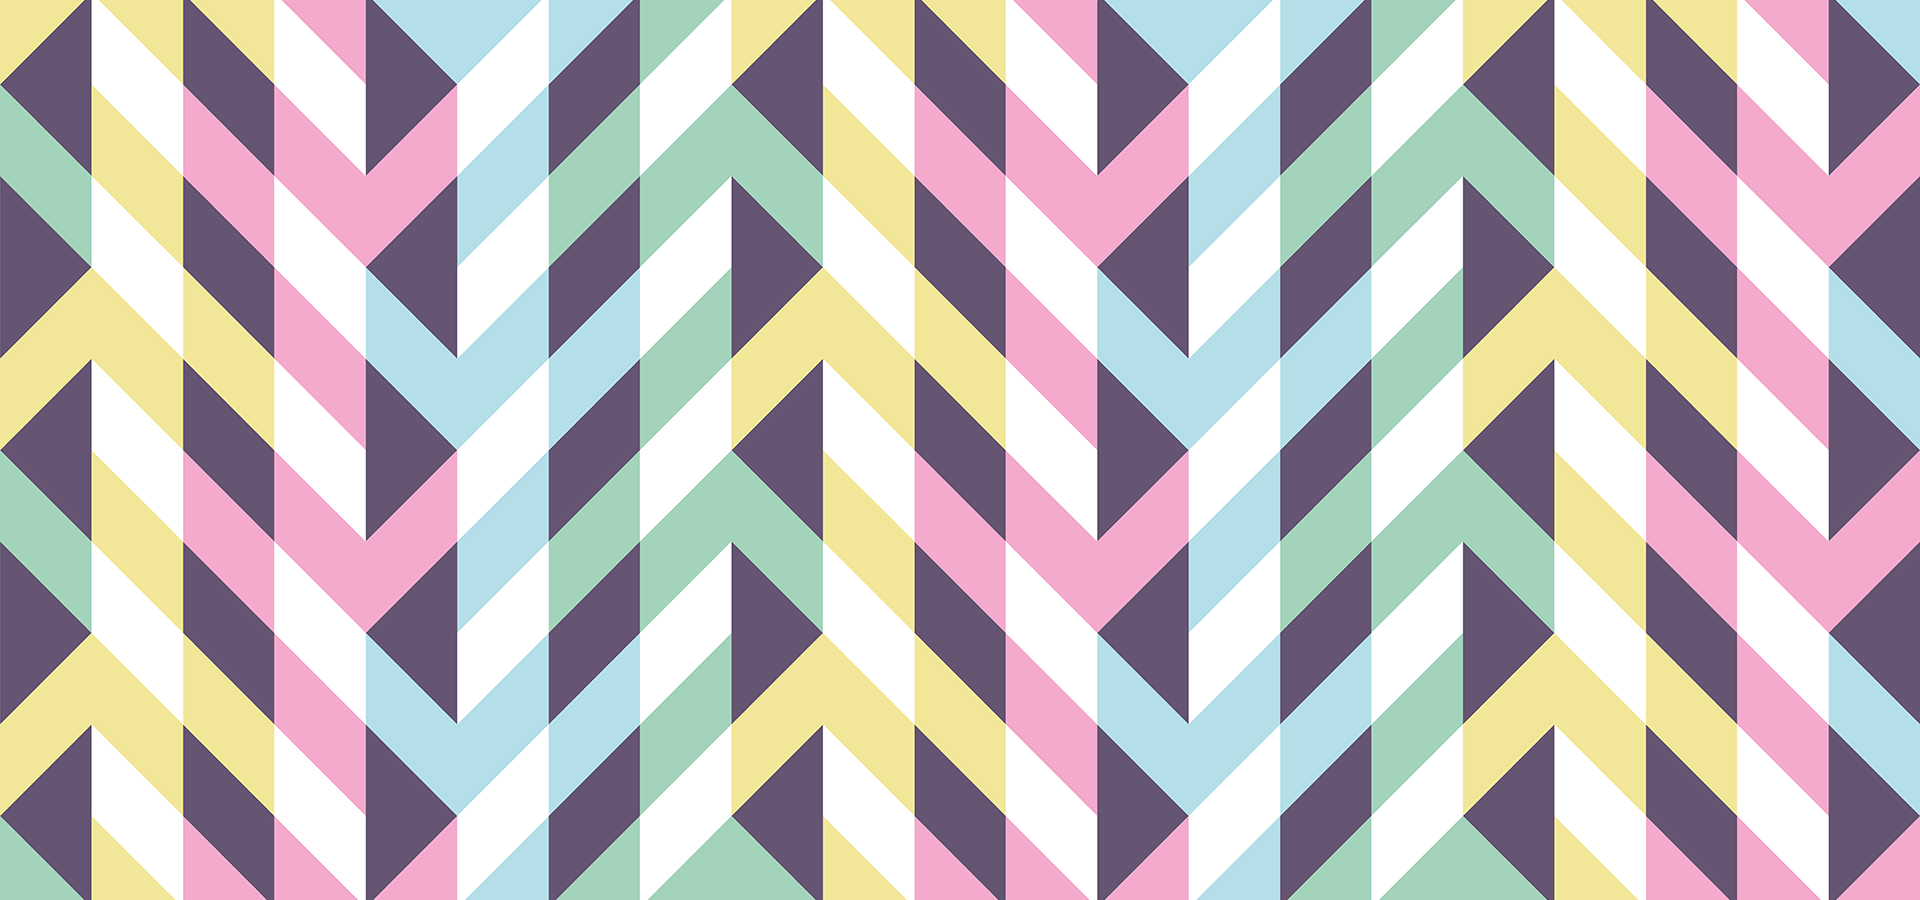 pastel-rainbow-arrows-of-illusion-pattern-by-petits-pixels